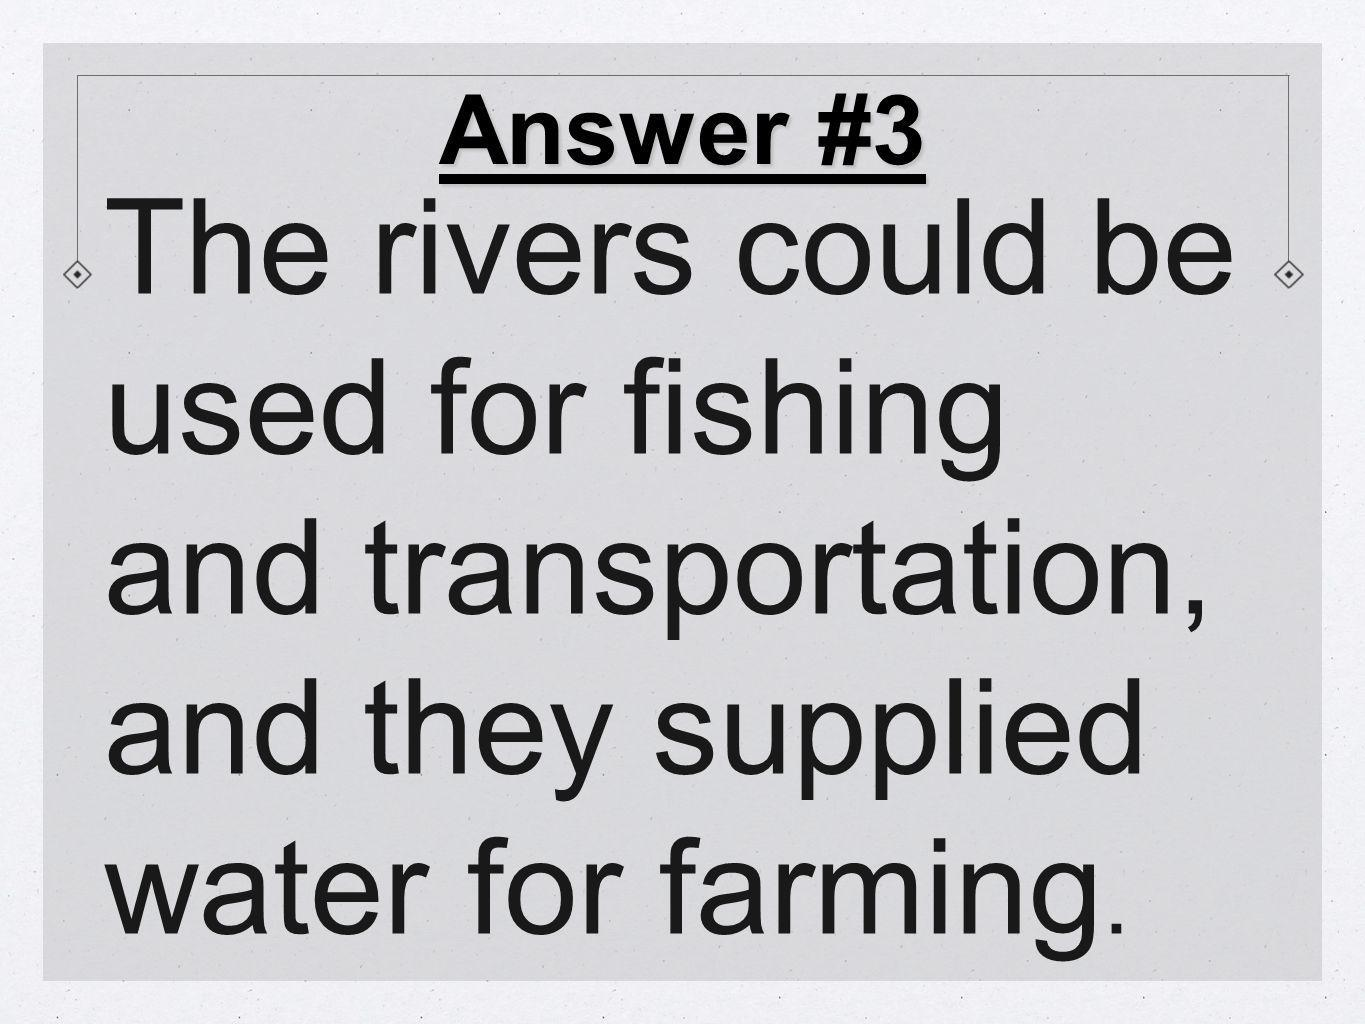 Answer #3 The rivers could be used for fishing and transportation, and they supplied water for farming.